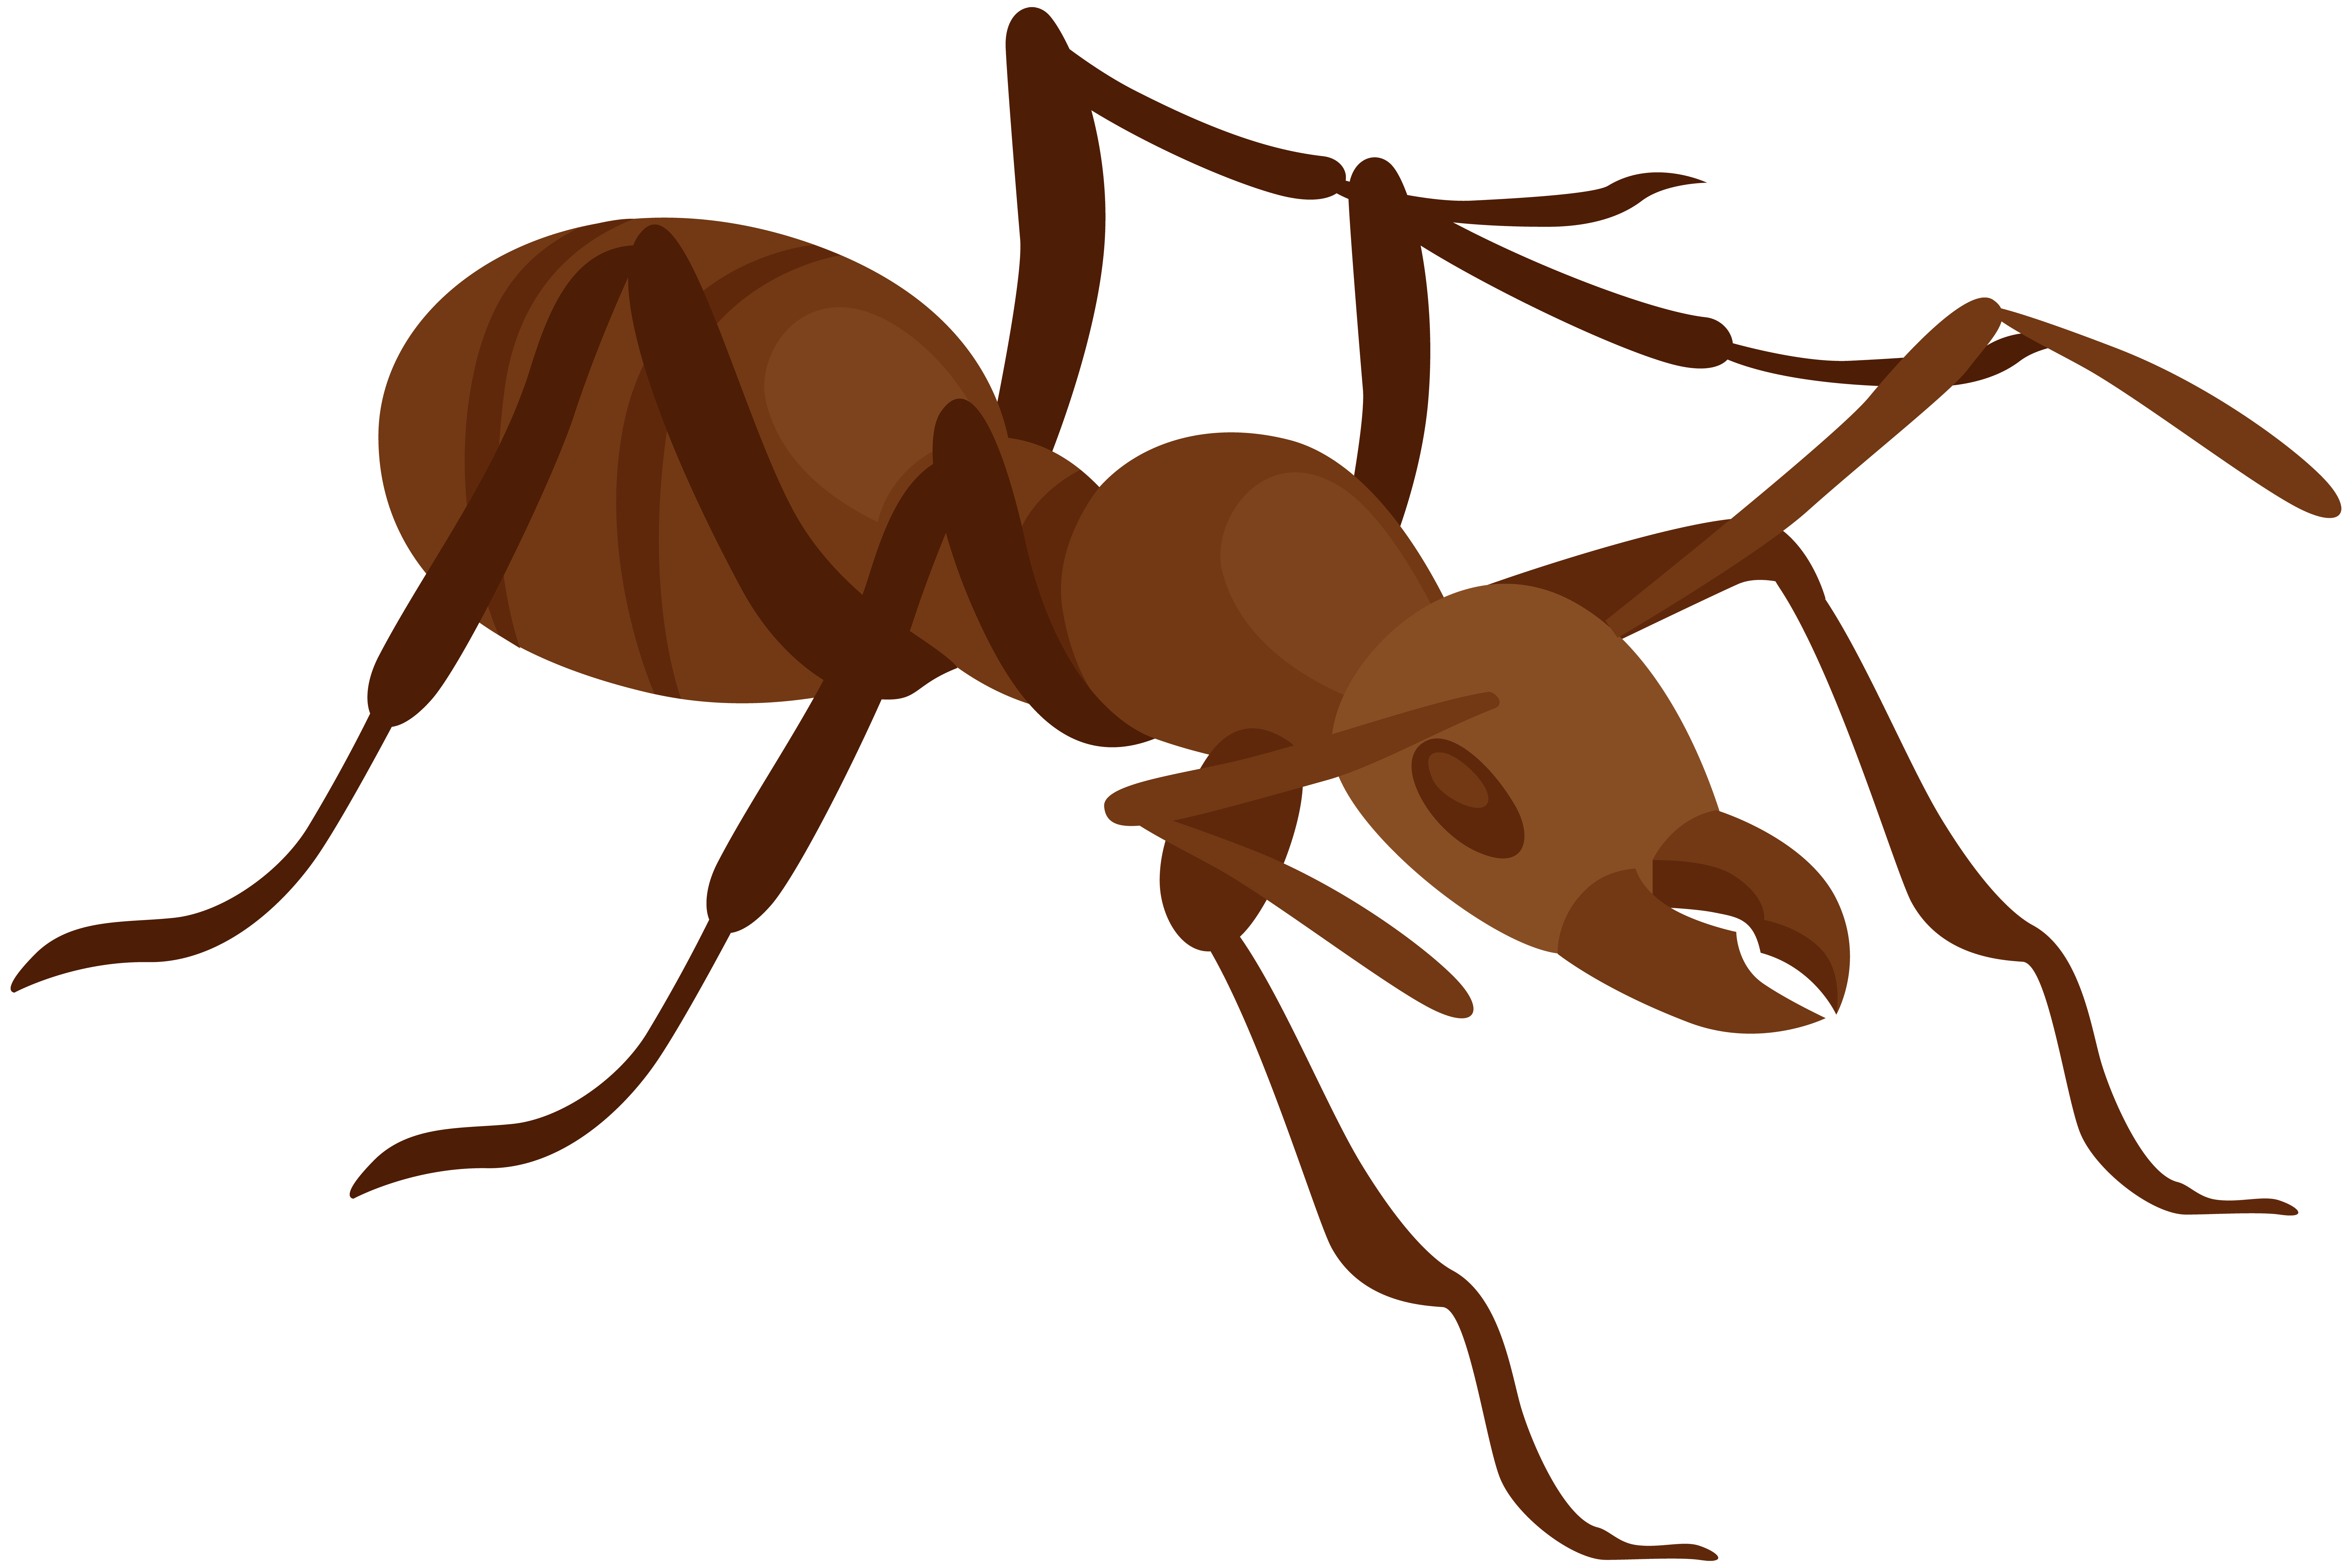 jpg library Ant at getdrawings com. Clipart ants